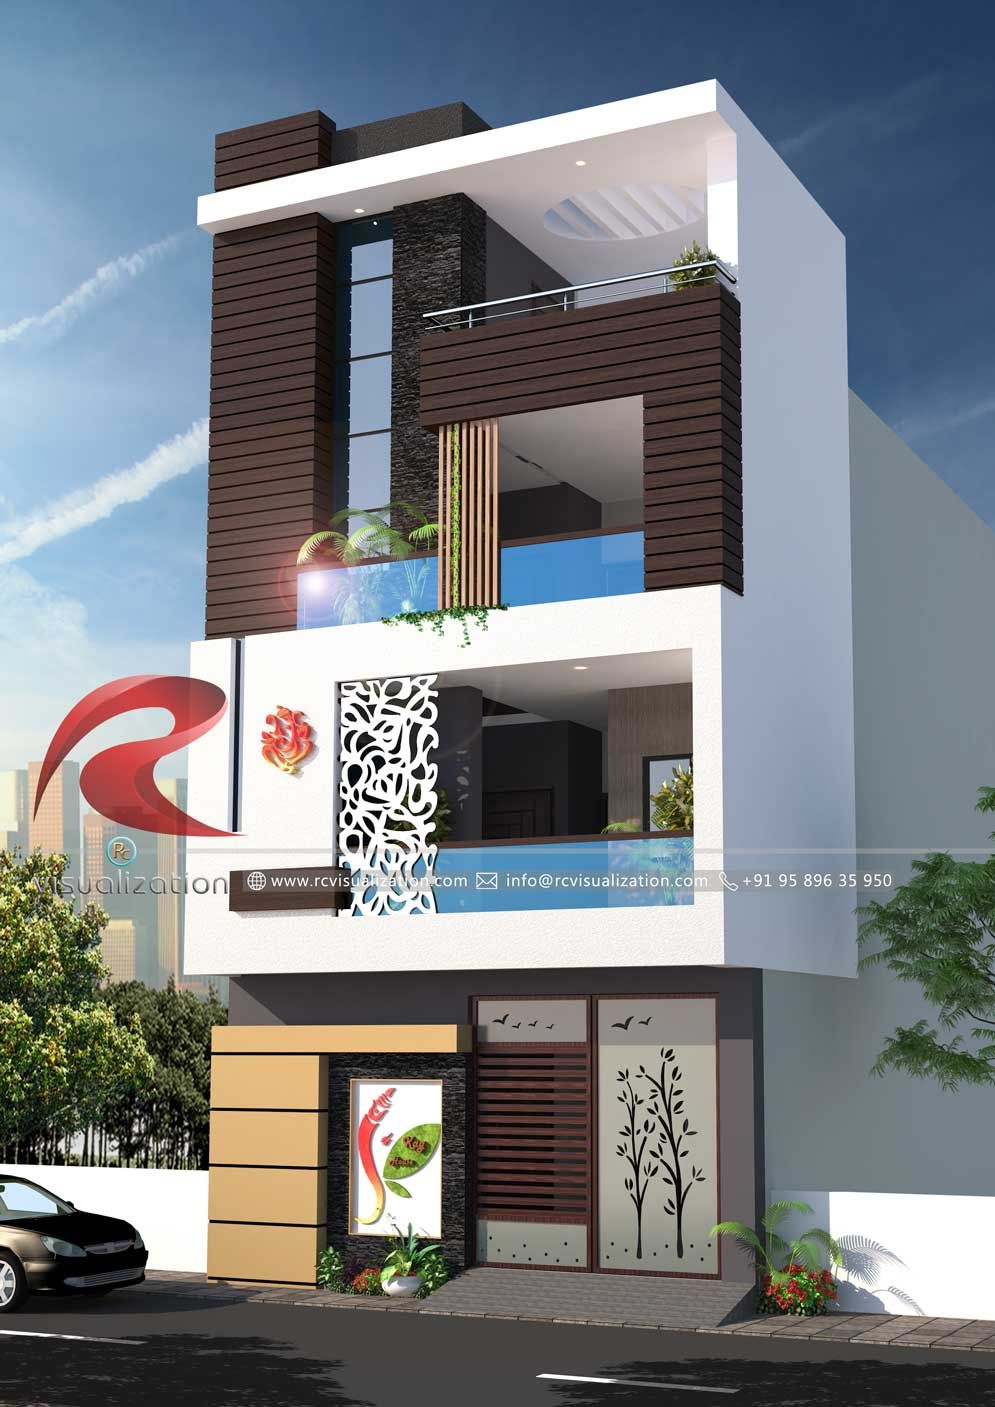 3d Narrow House Designs Gallery Rc Visualization Structural Plan And Elevation Designing Small House Elevation Design Narrow House Designs House Front Design